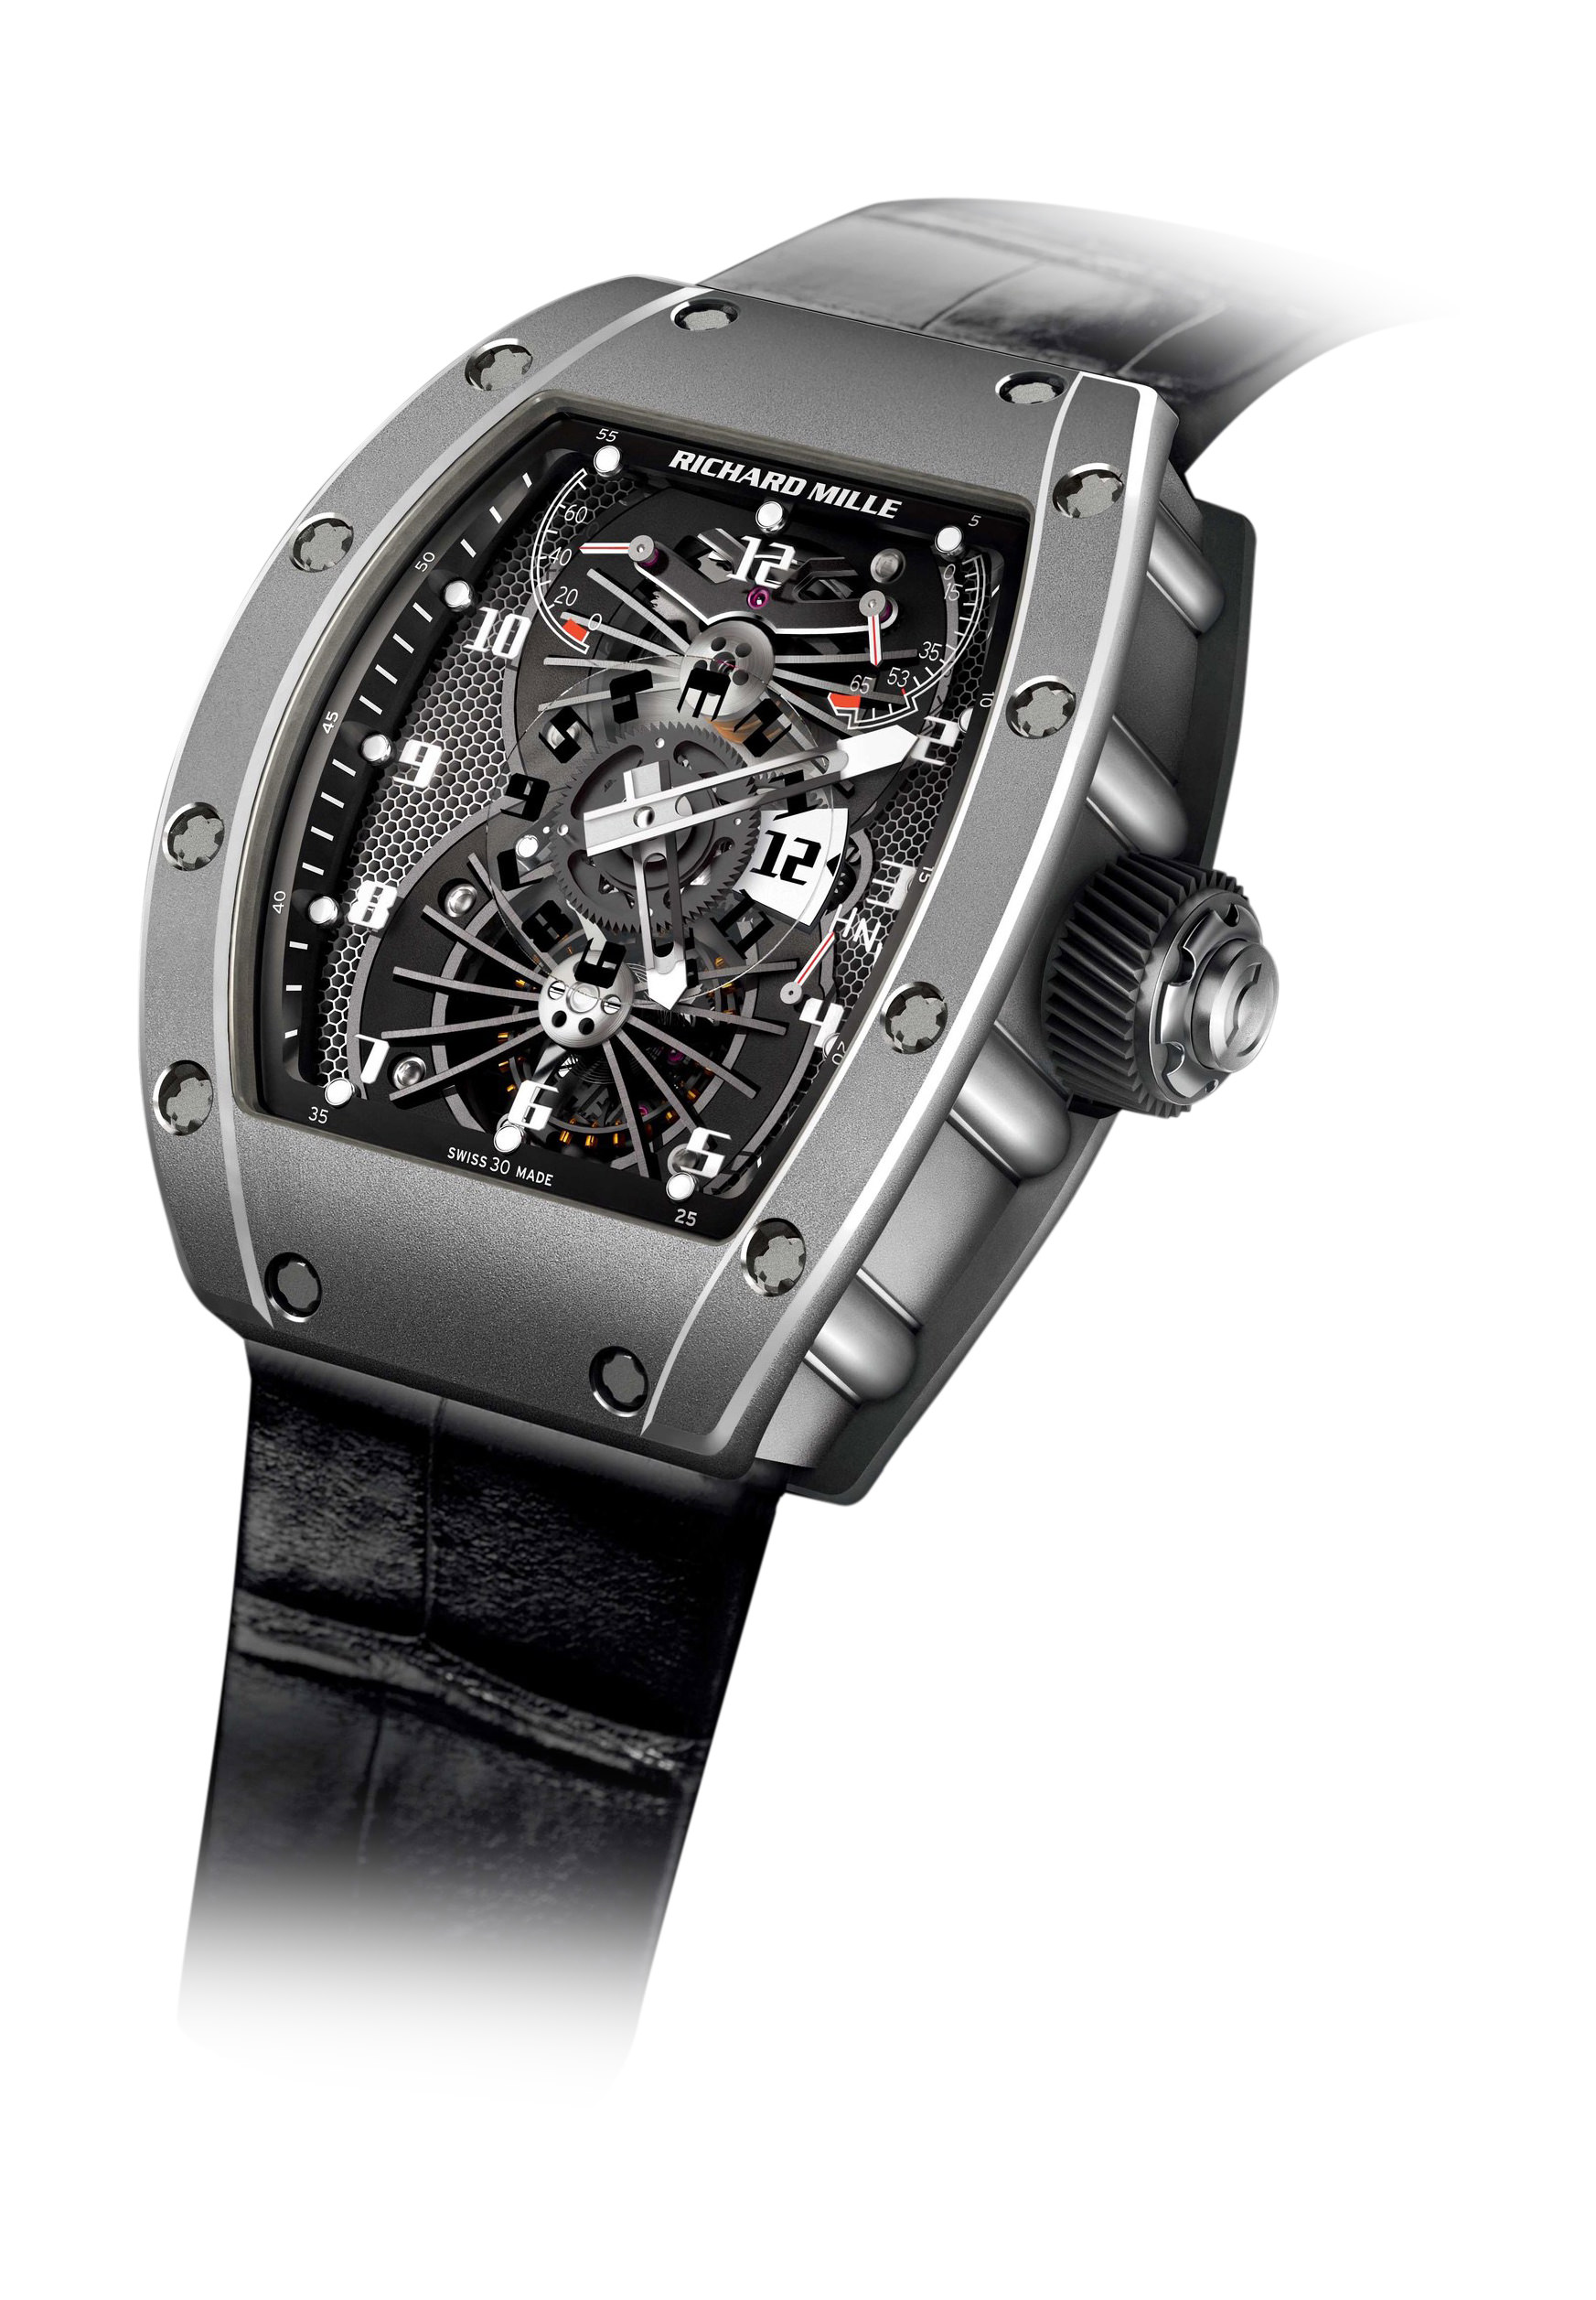 Richard Mille RM 022 Manual Winding Tourbillon Aerodyne Dual Time Zone –  The Watch Pages